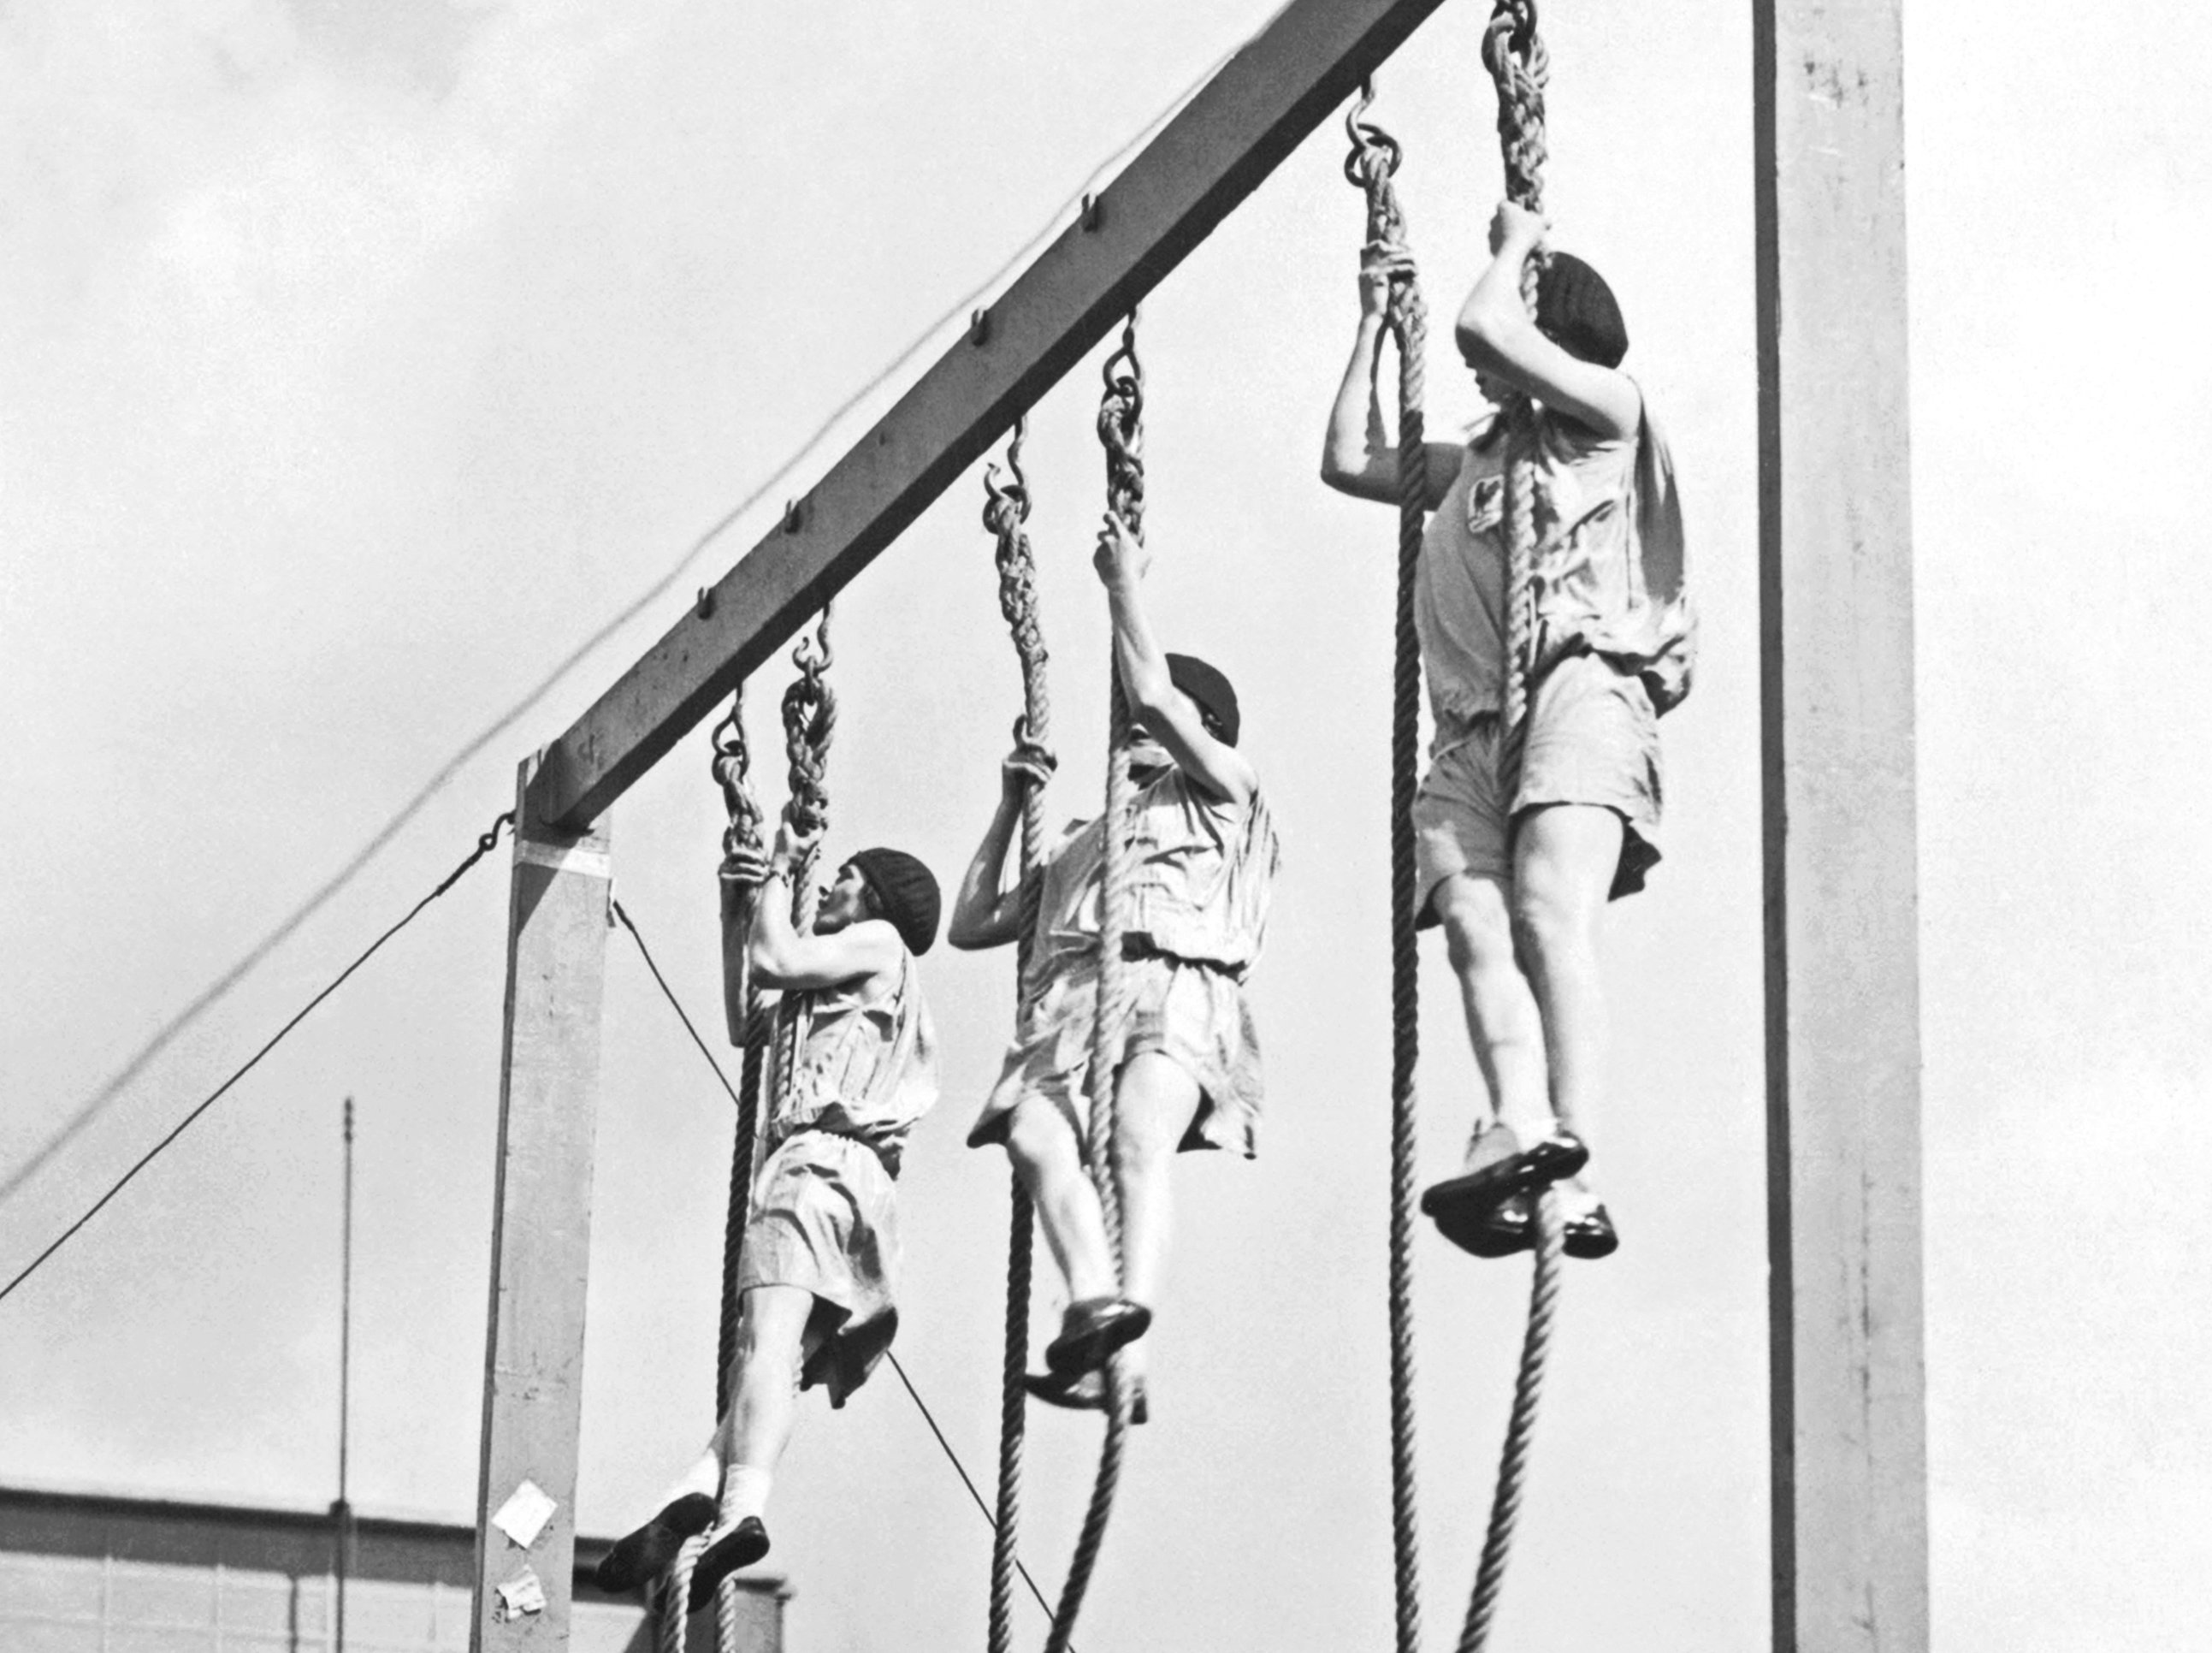 Olympic Rope Climbing Event